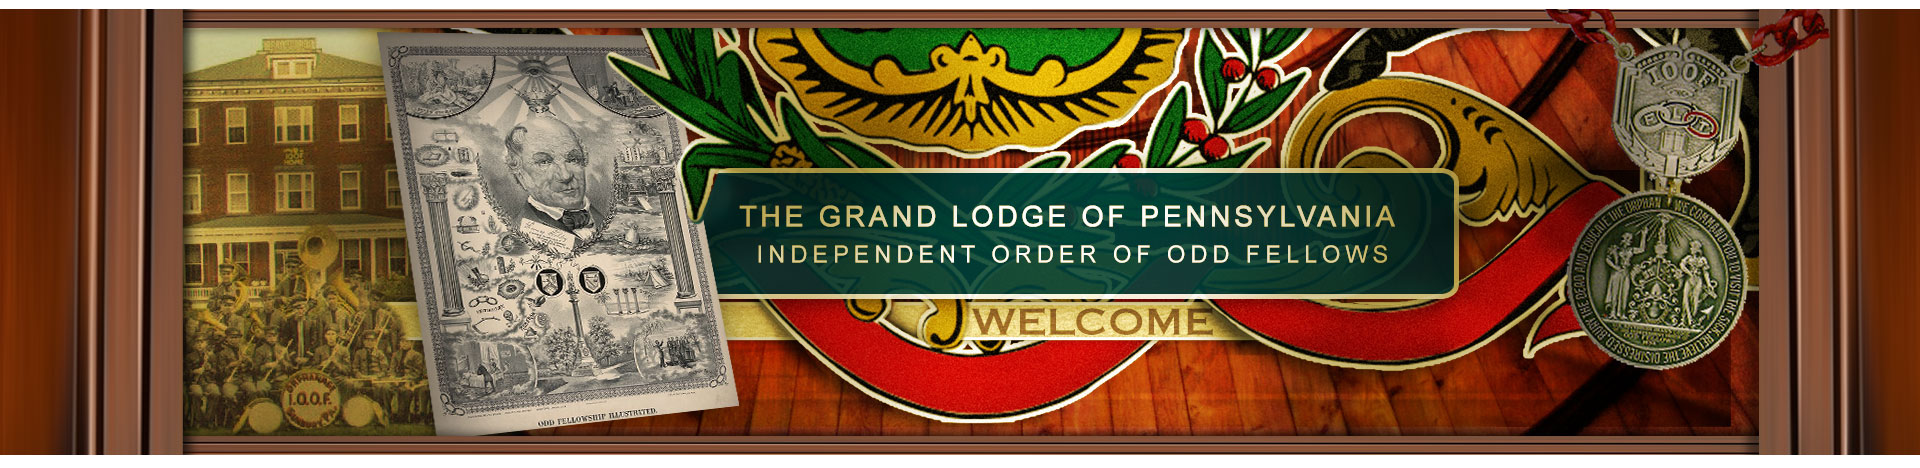 Welcome to The Grand Lodge of Pennsylvania, Independent Order of Odd Fellows!